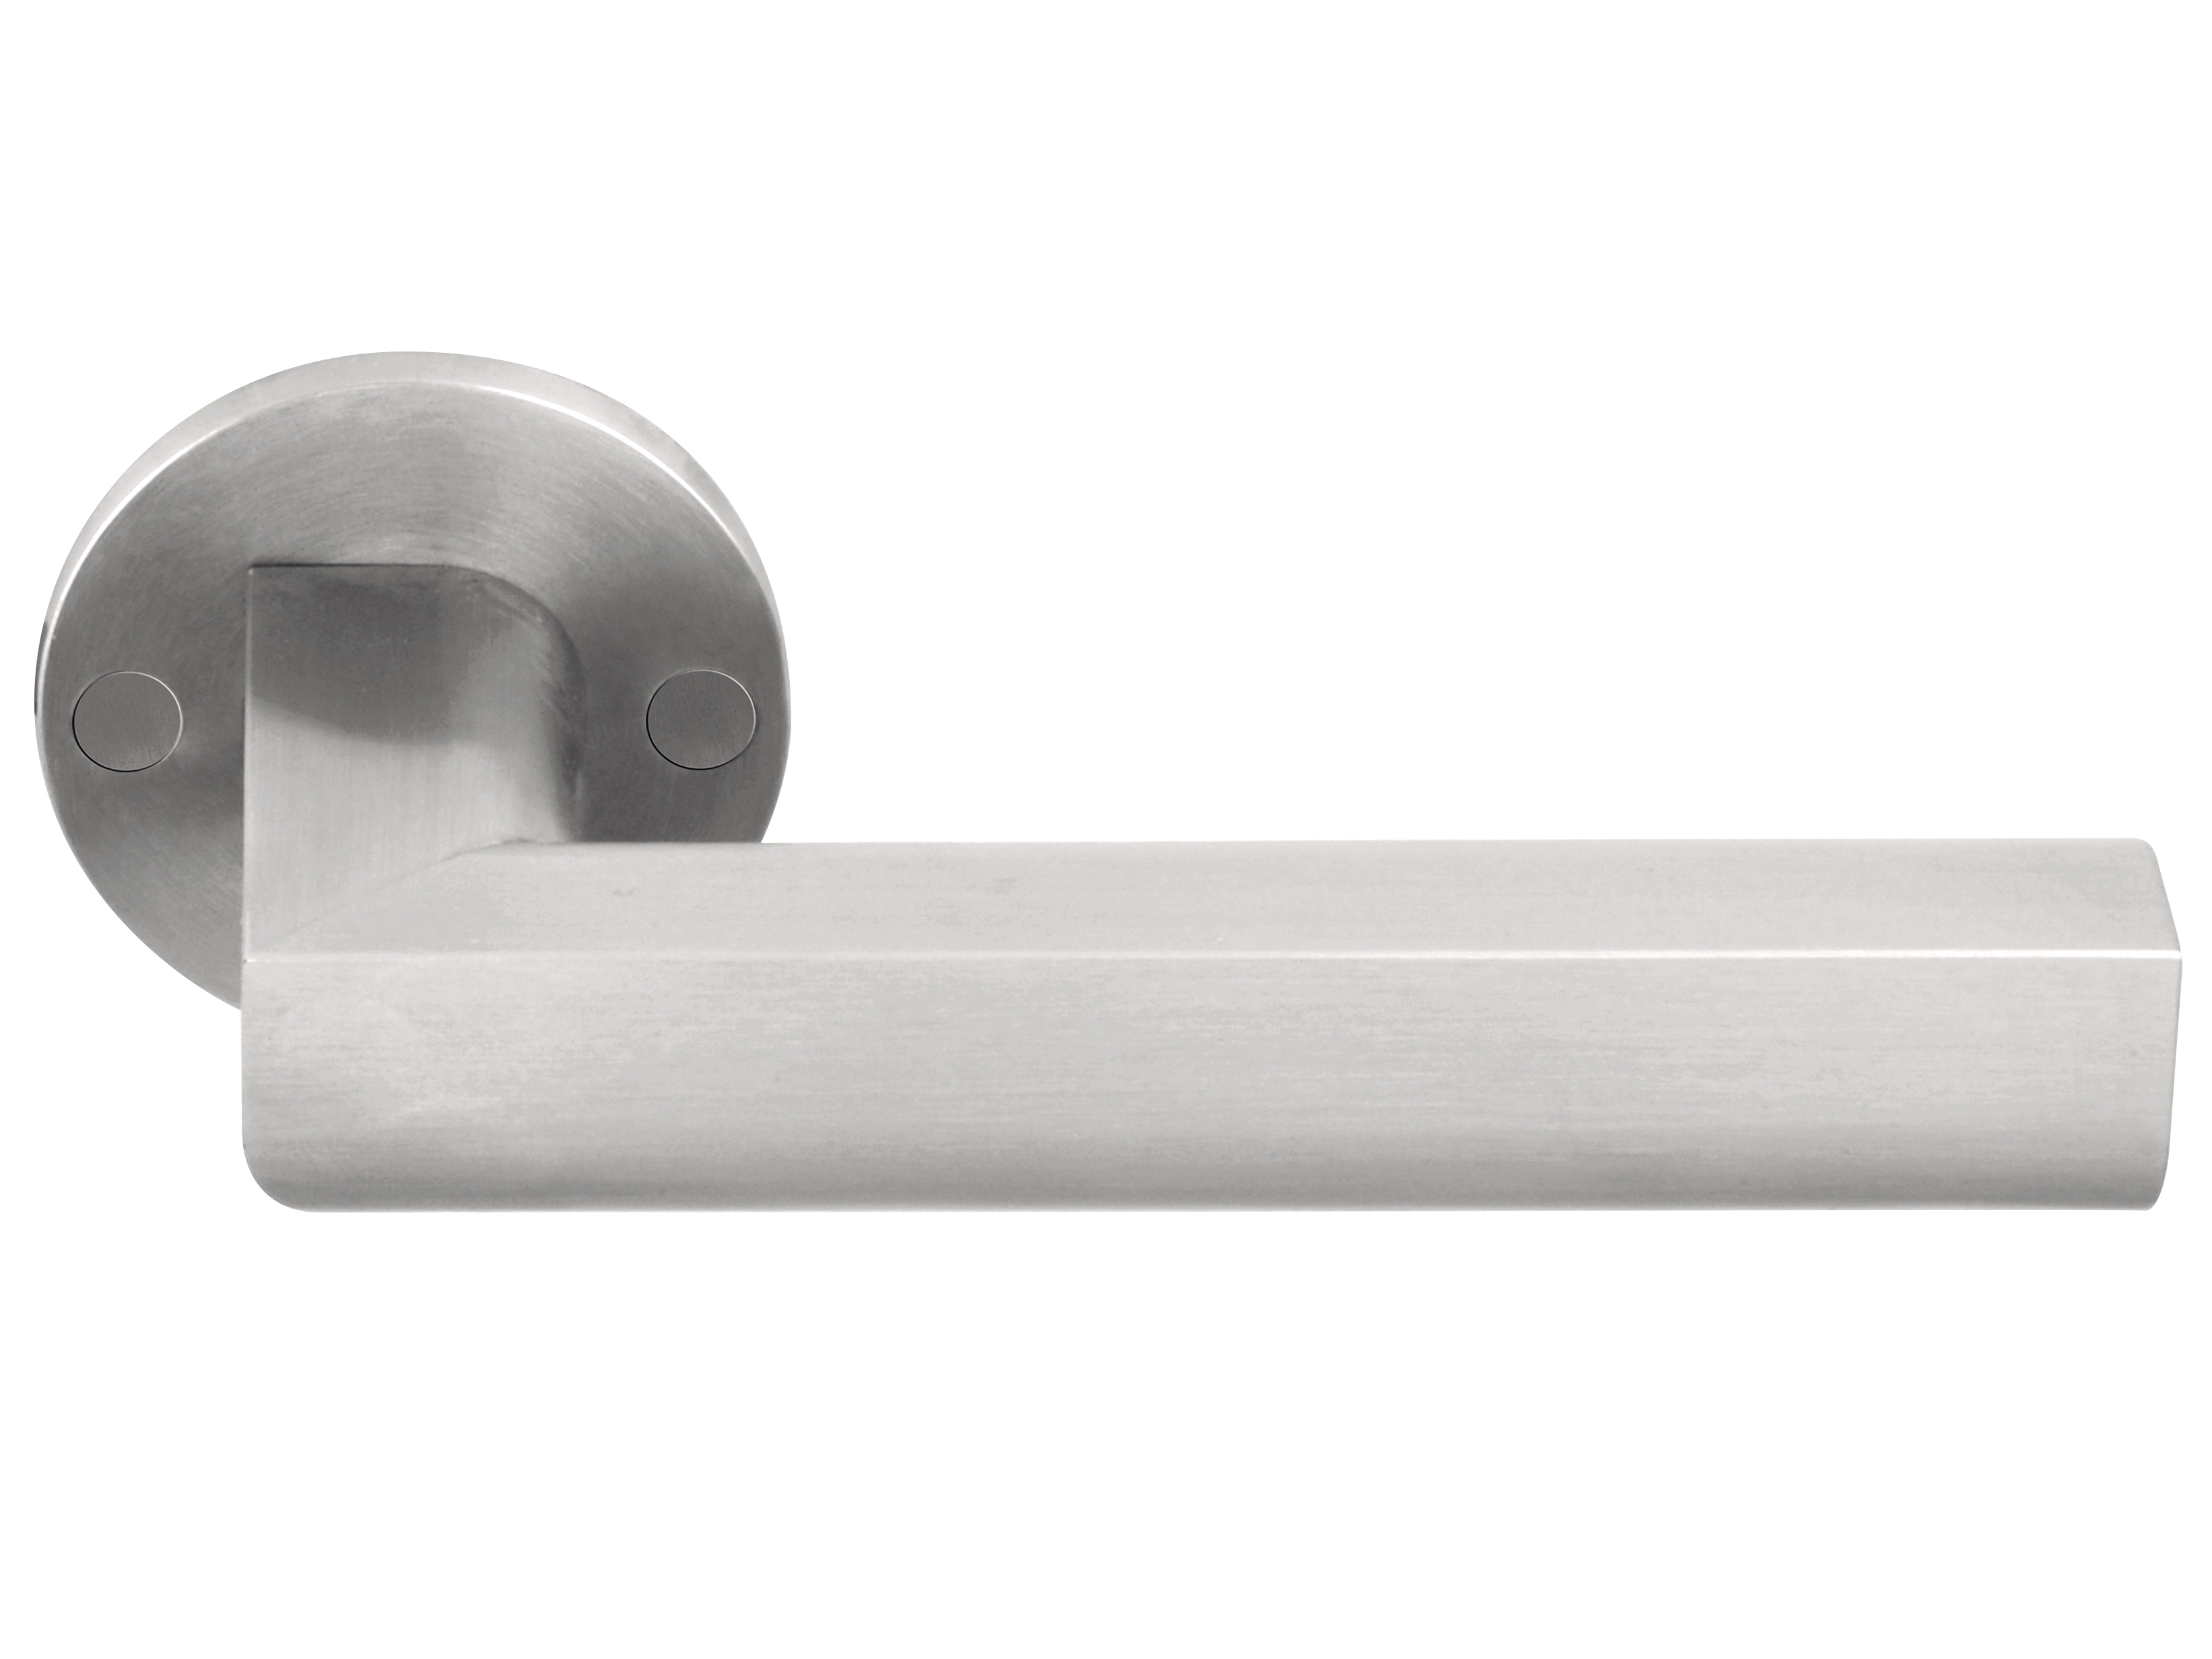 Brushed Stainless Steel Door Knobs